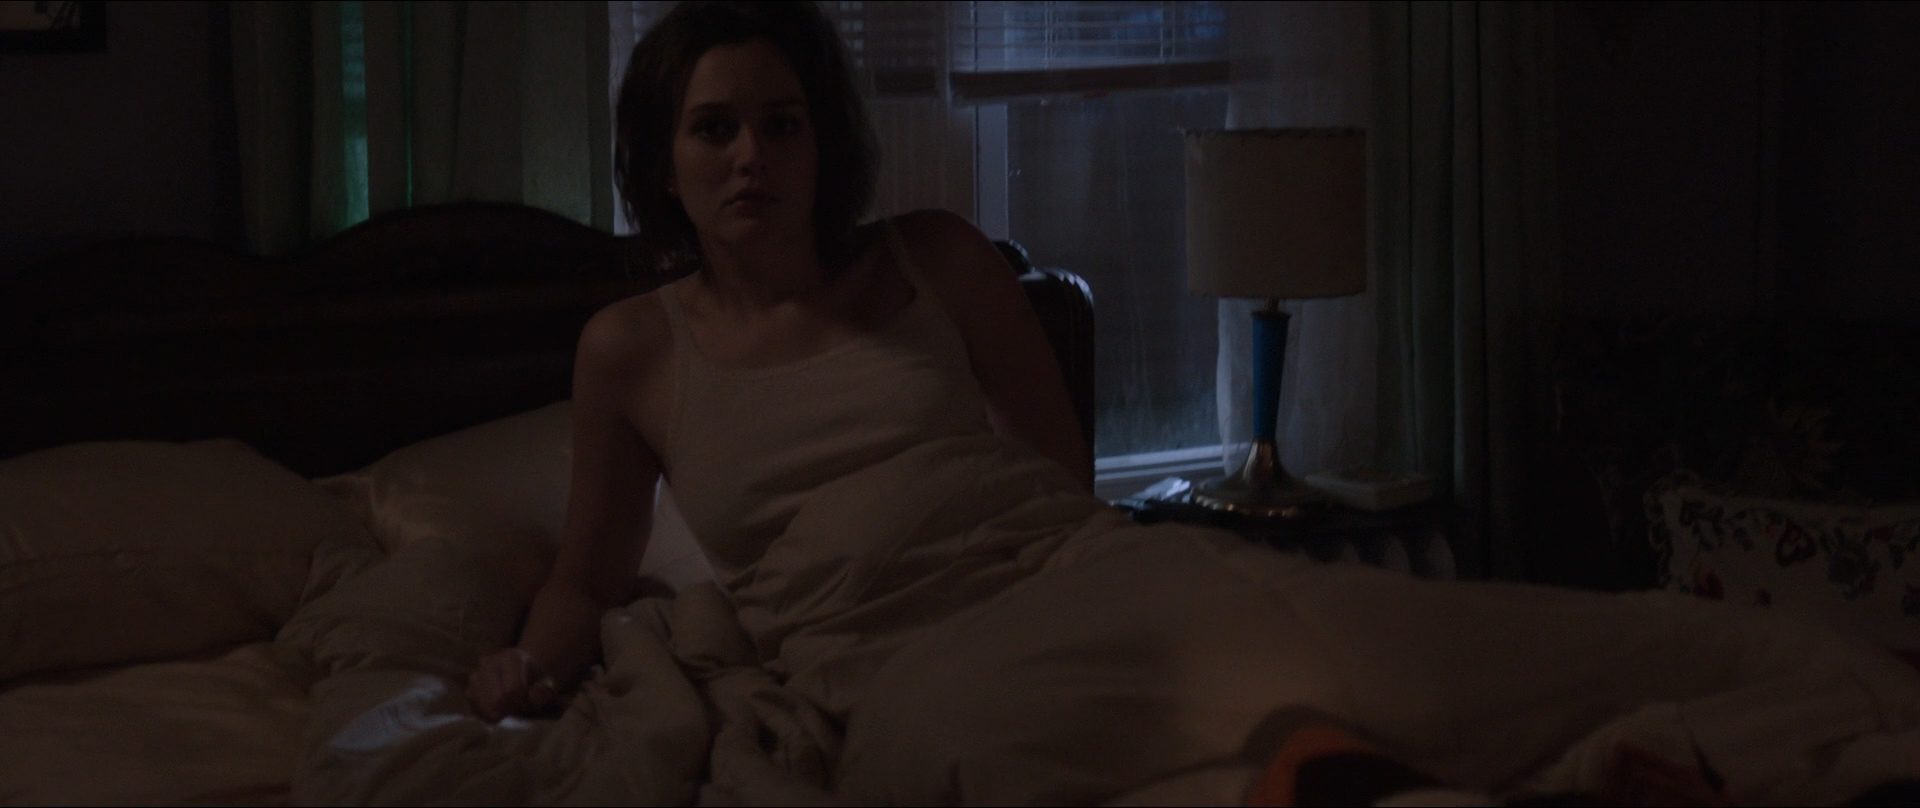 With Leighton meester free sex tape